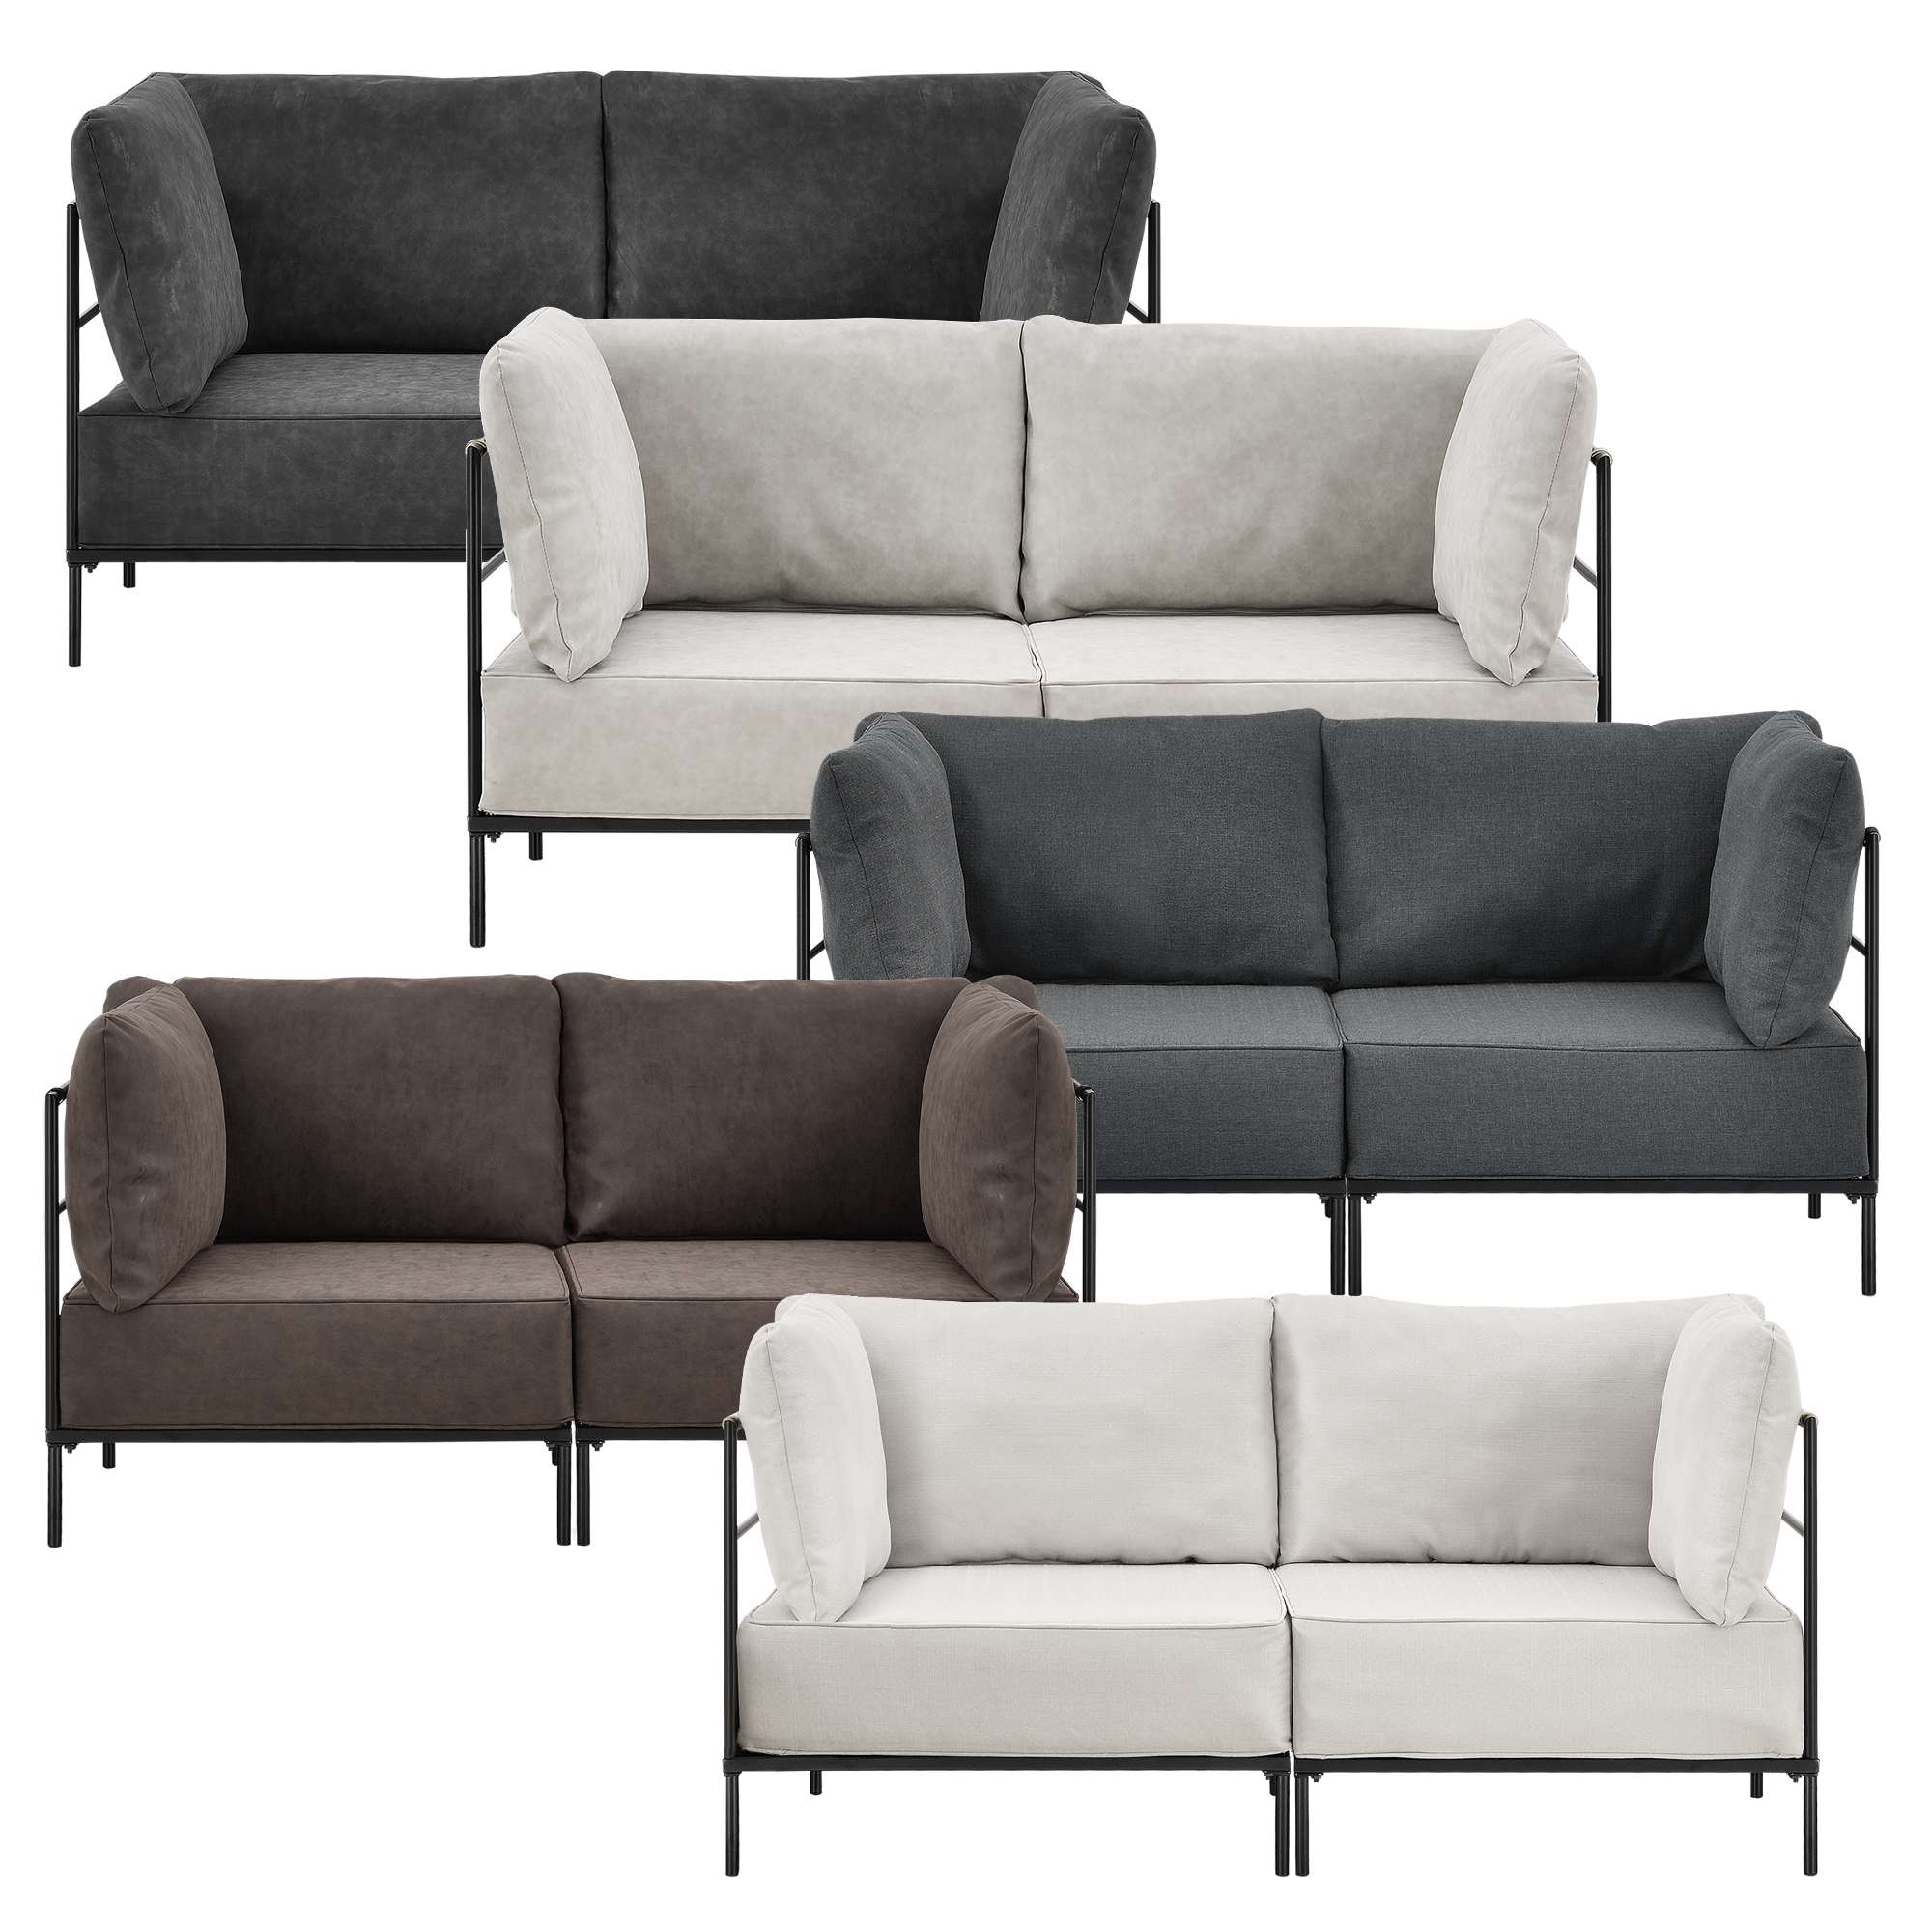 Sofa Couch Chair Sofa Interior Design Set Imitation Leather Ebay